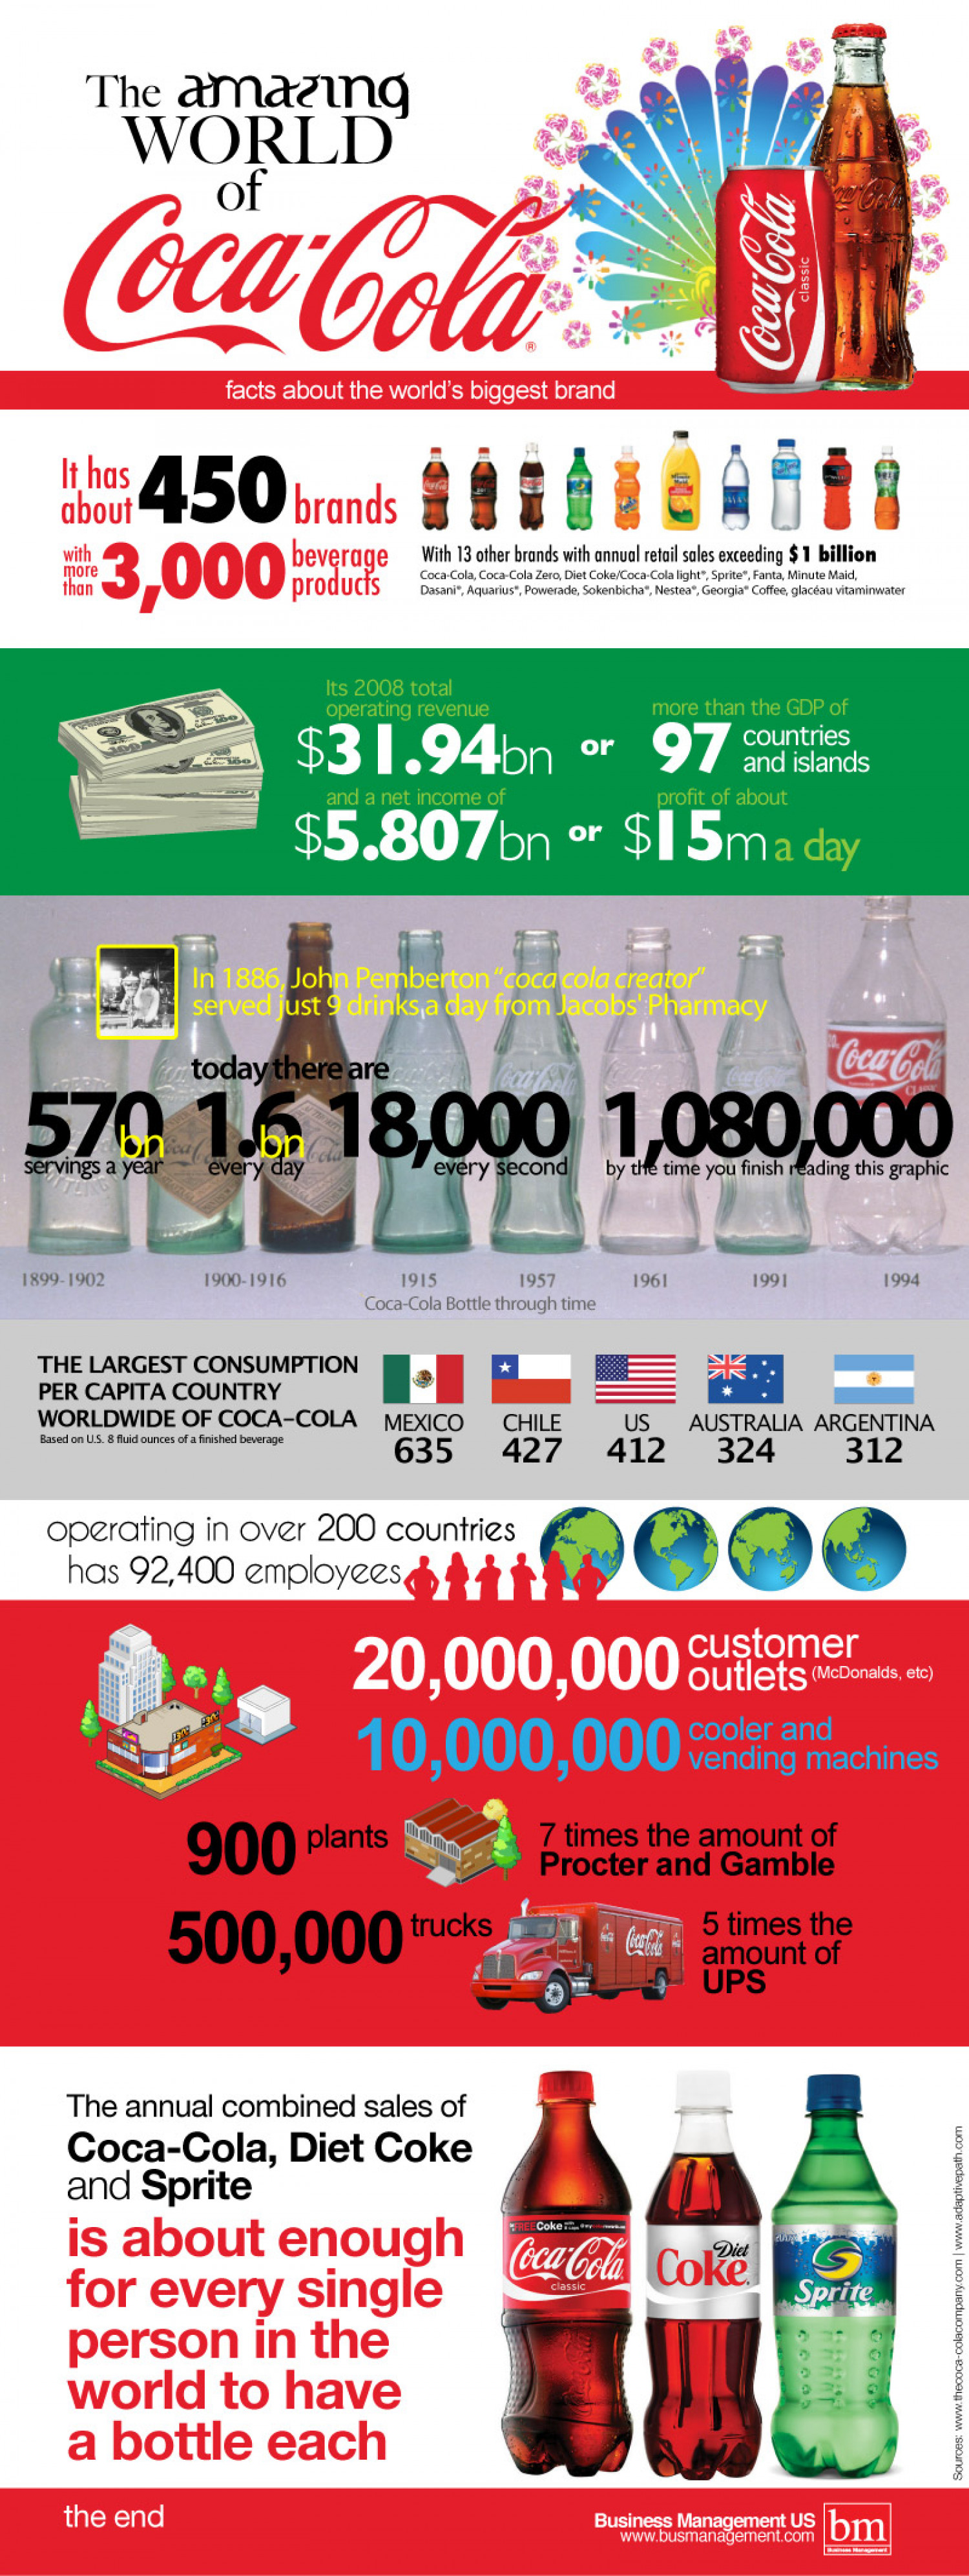 Coca-Cola Brief Introduction Infographic